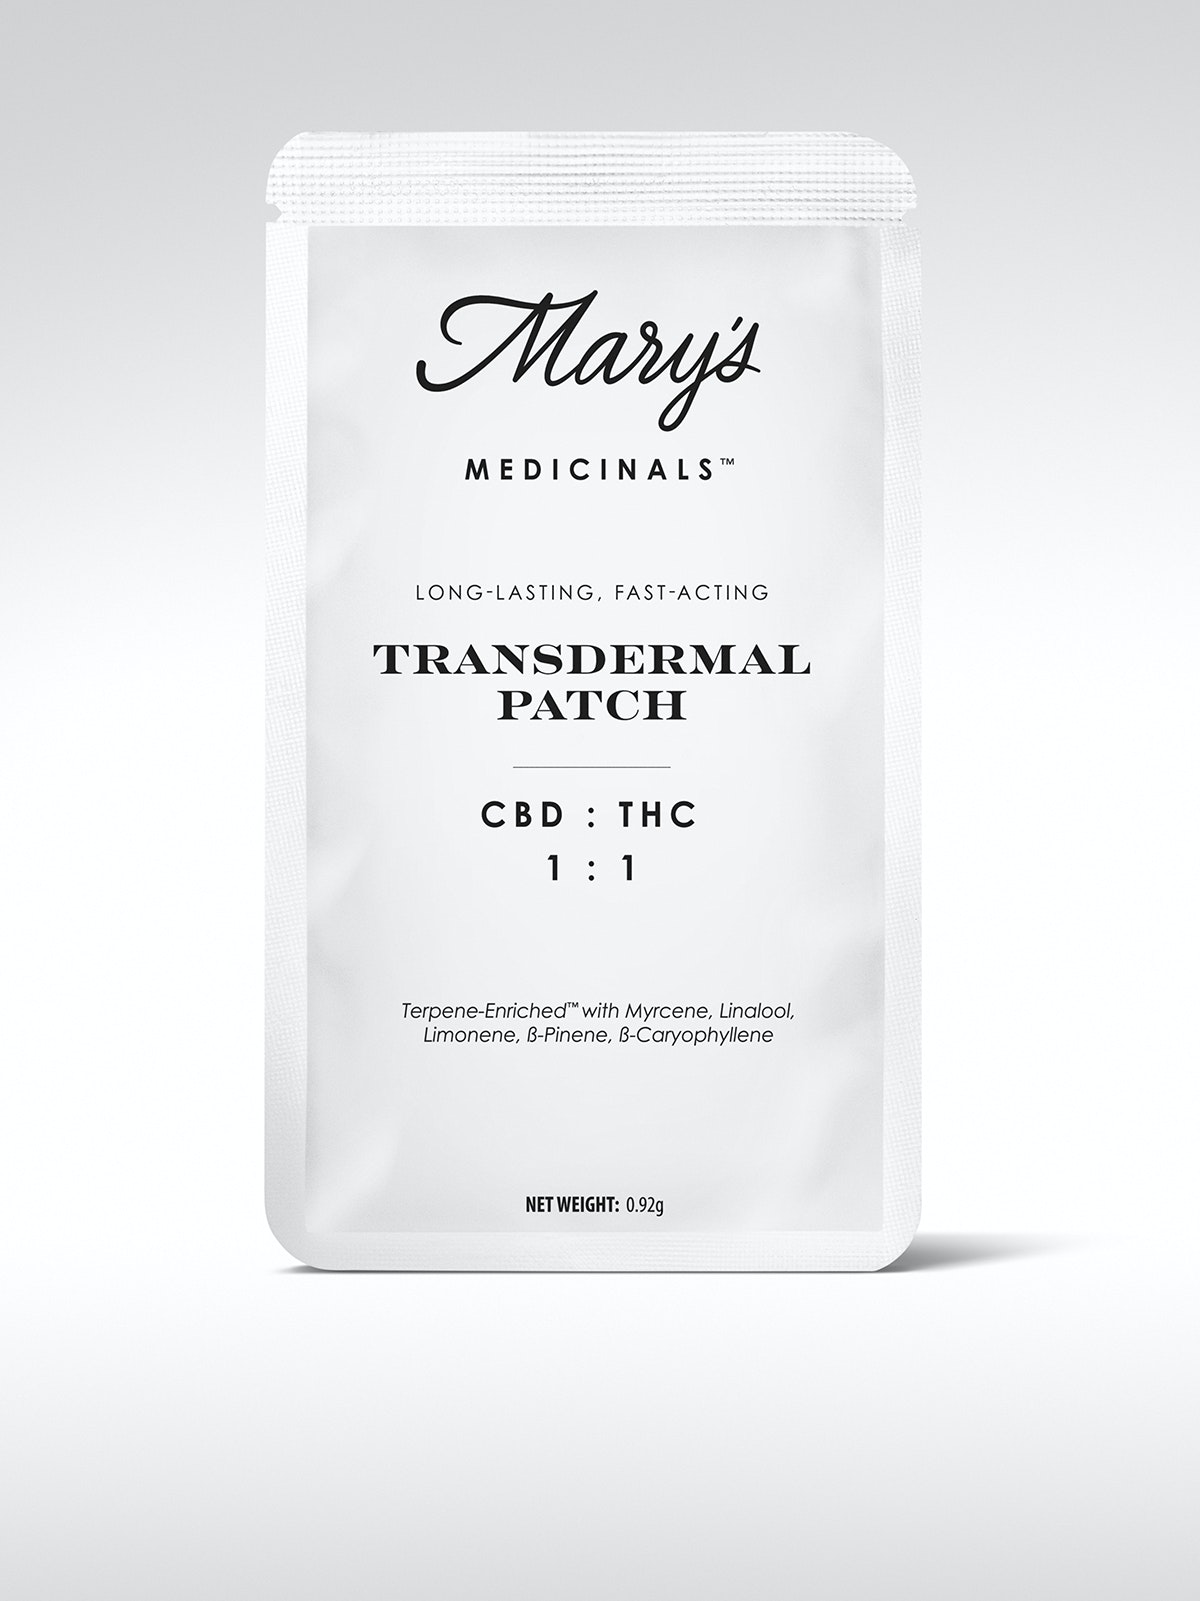 1:1 Transdermal Patch Topicals Patch